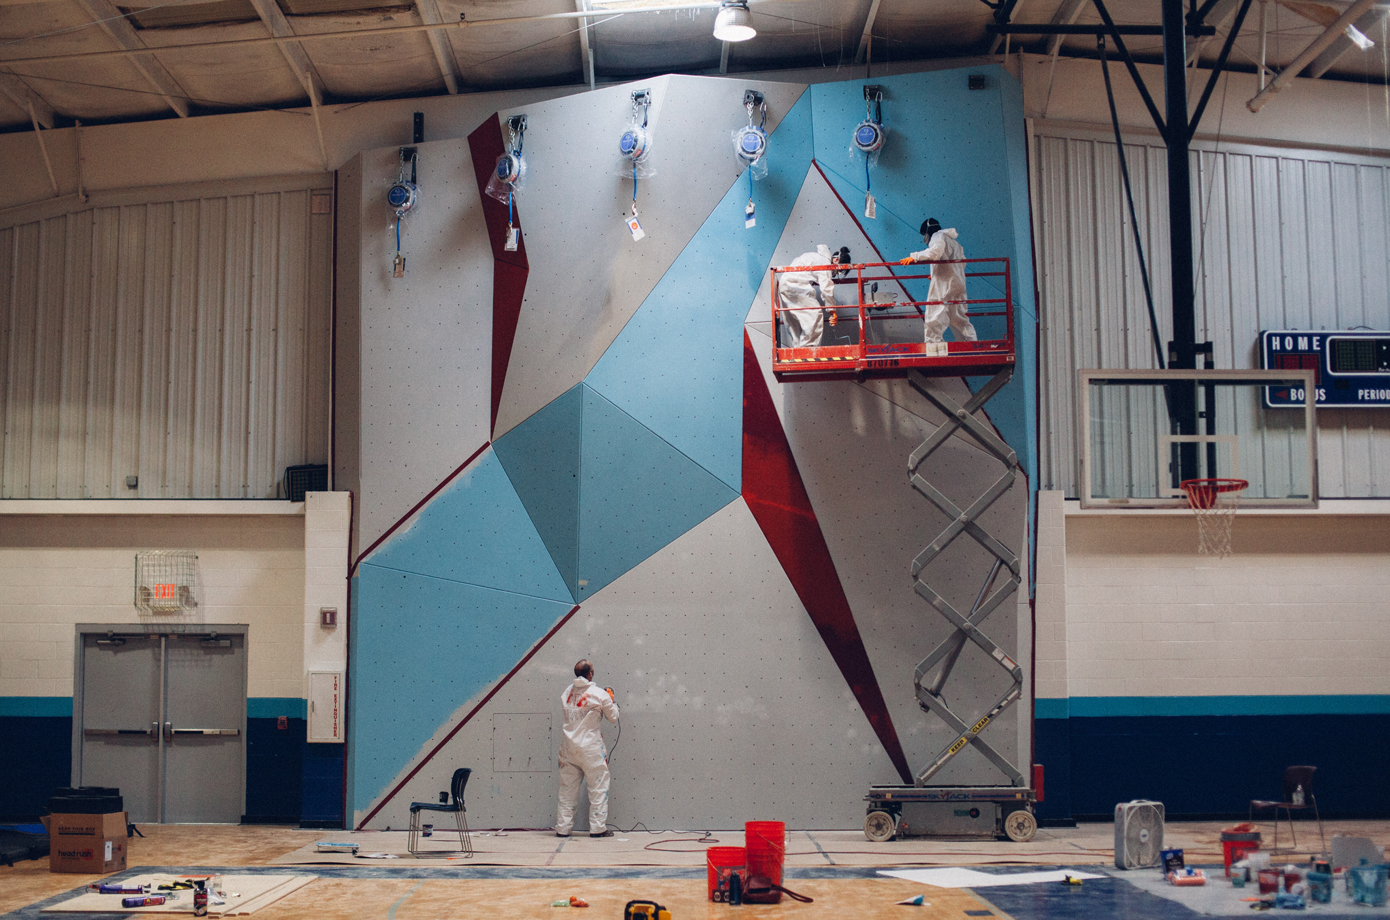 STL Boys and Girls Club has a new wall constructed.